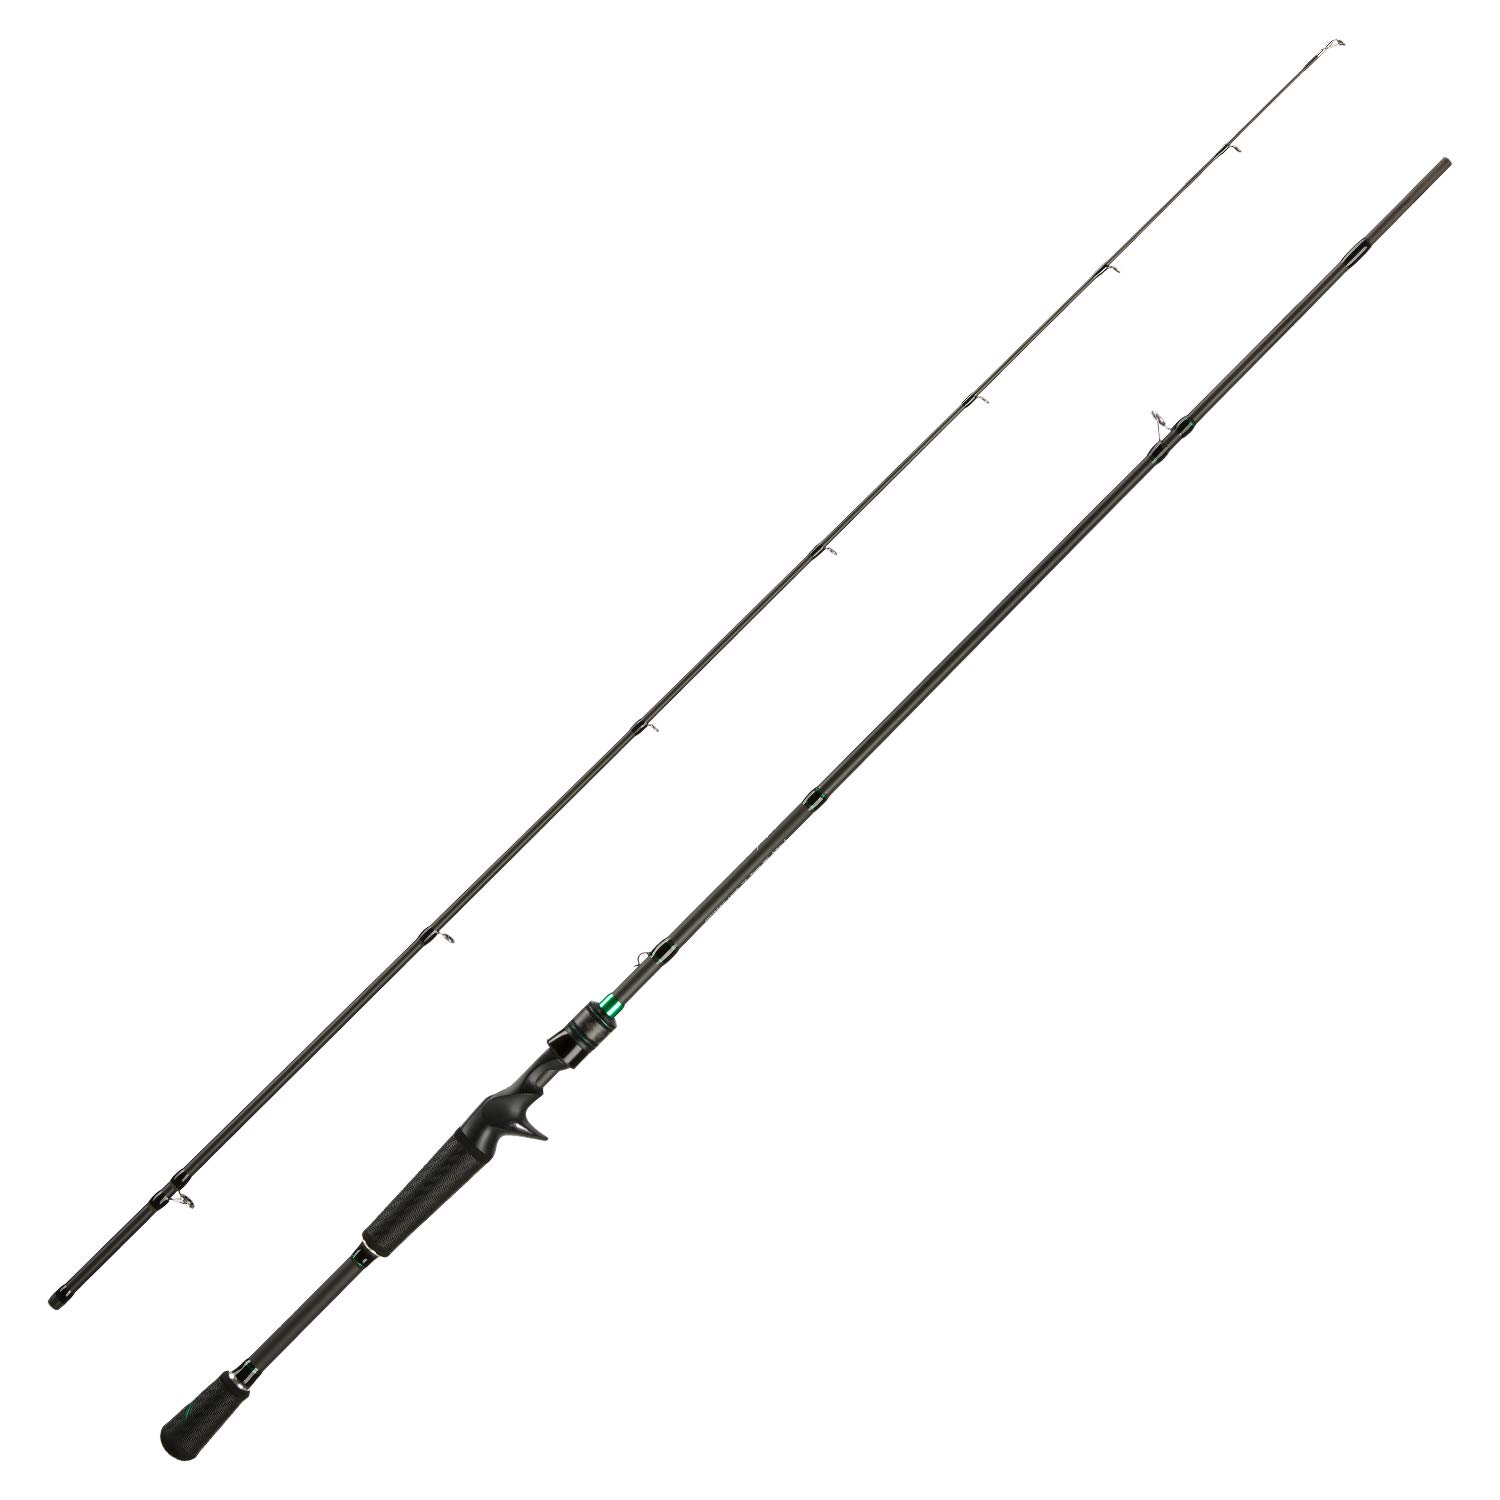 Piscifun Serpent Two Piece Baitcasting Rod – Fuji Line Guides, IM7 Carbon Blank, Lightweight Baitcasting Fishing Rods